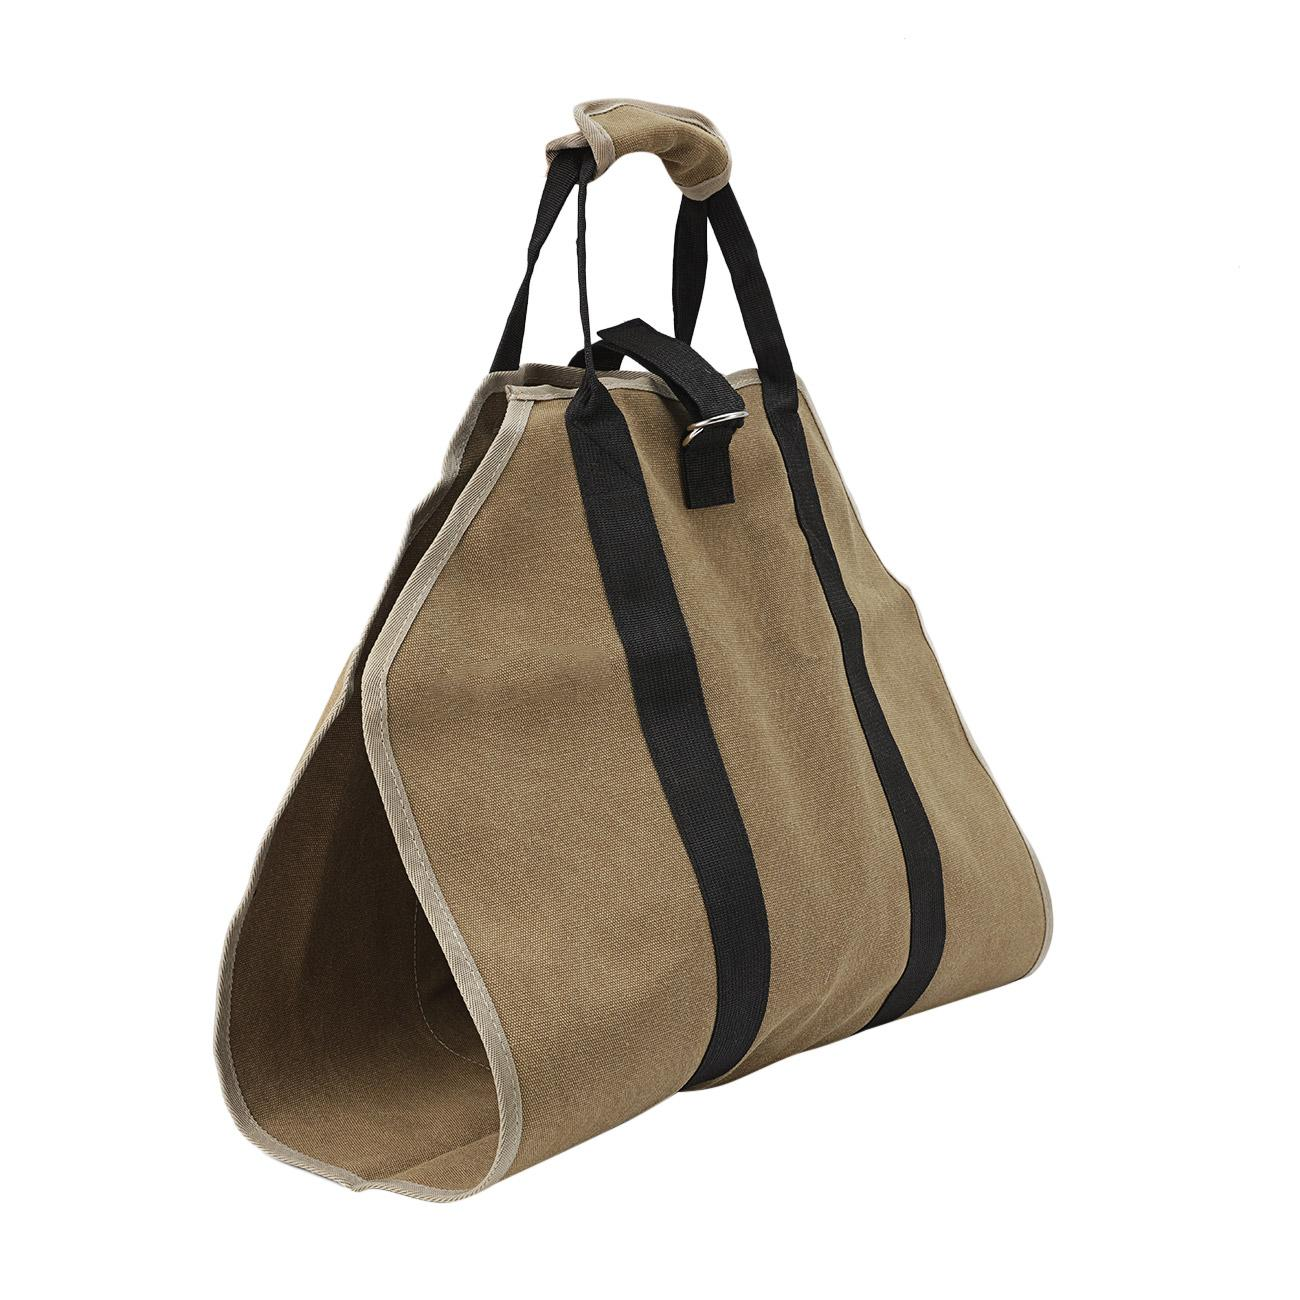 Outdoor Log Carrier Firewood Tote Wood Carrying Bag